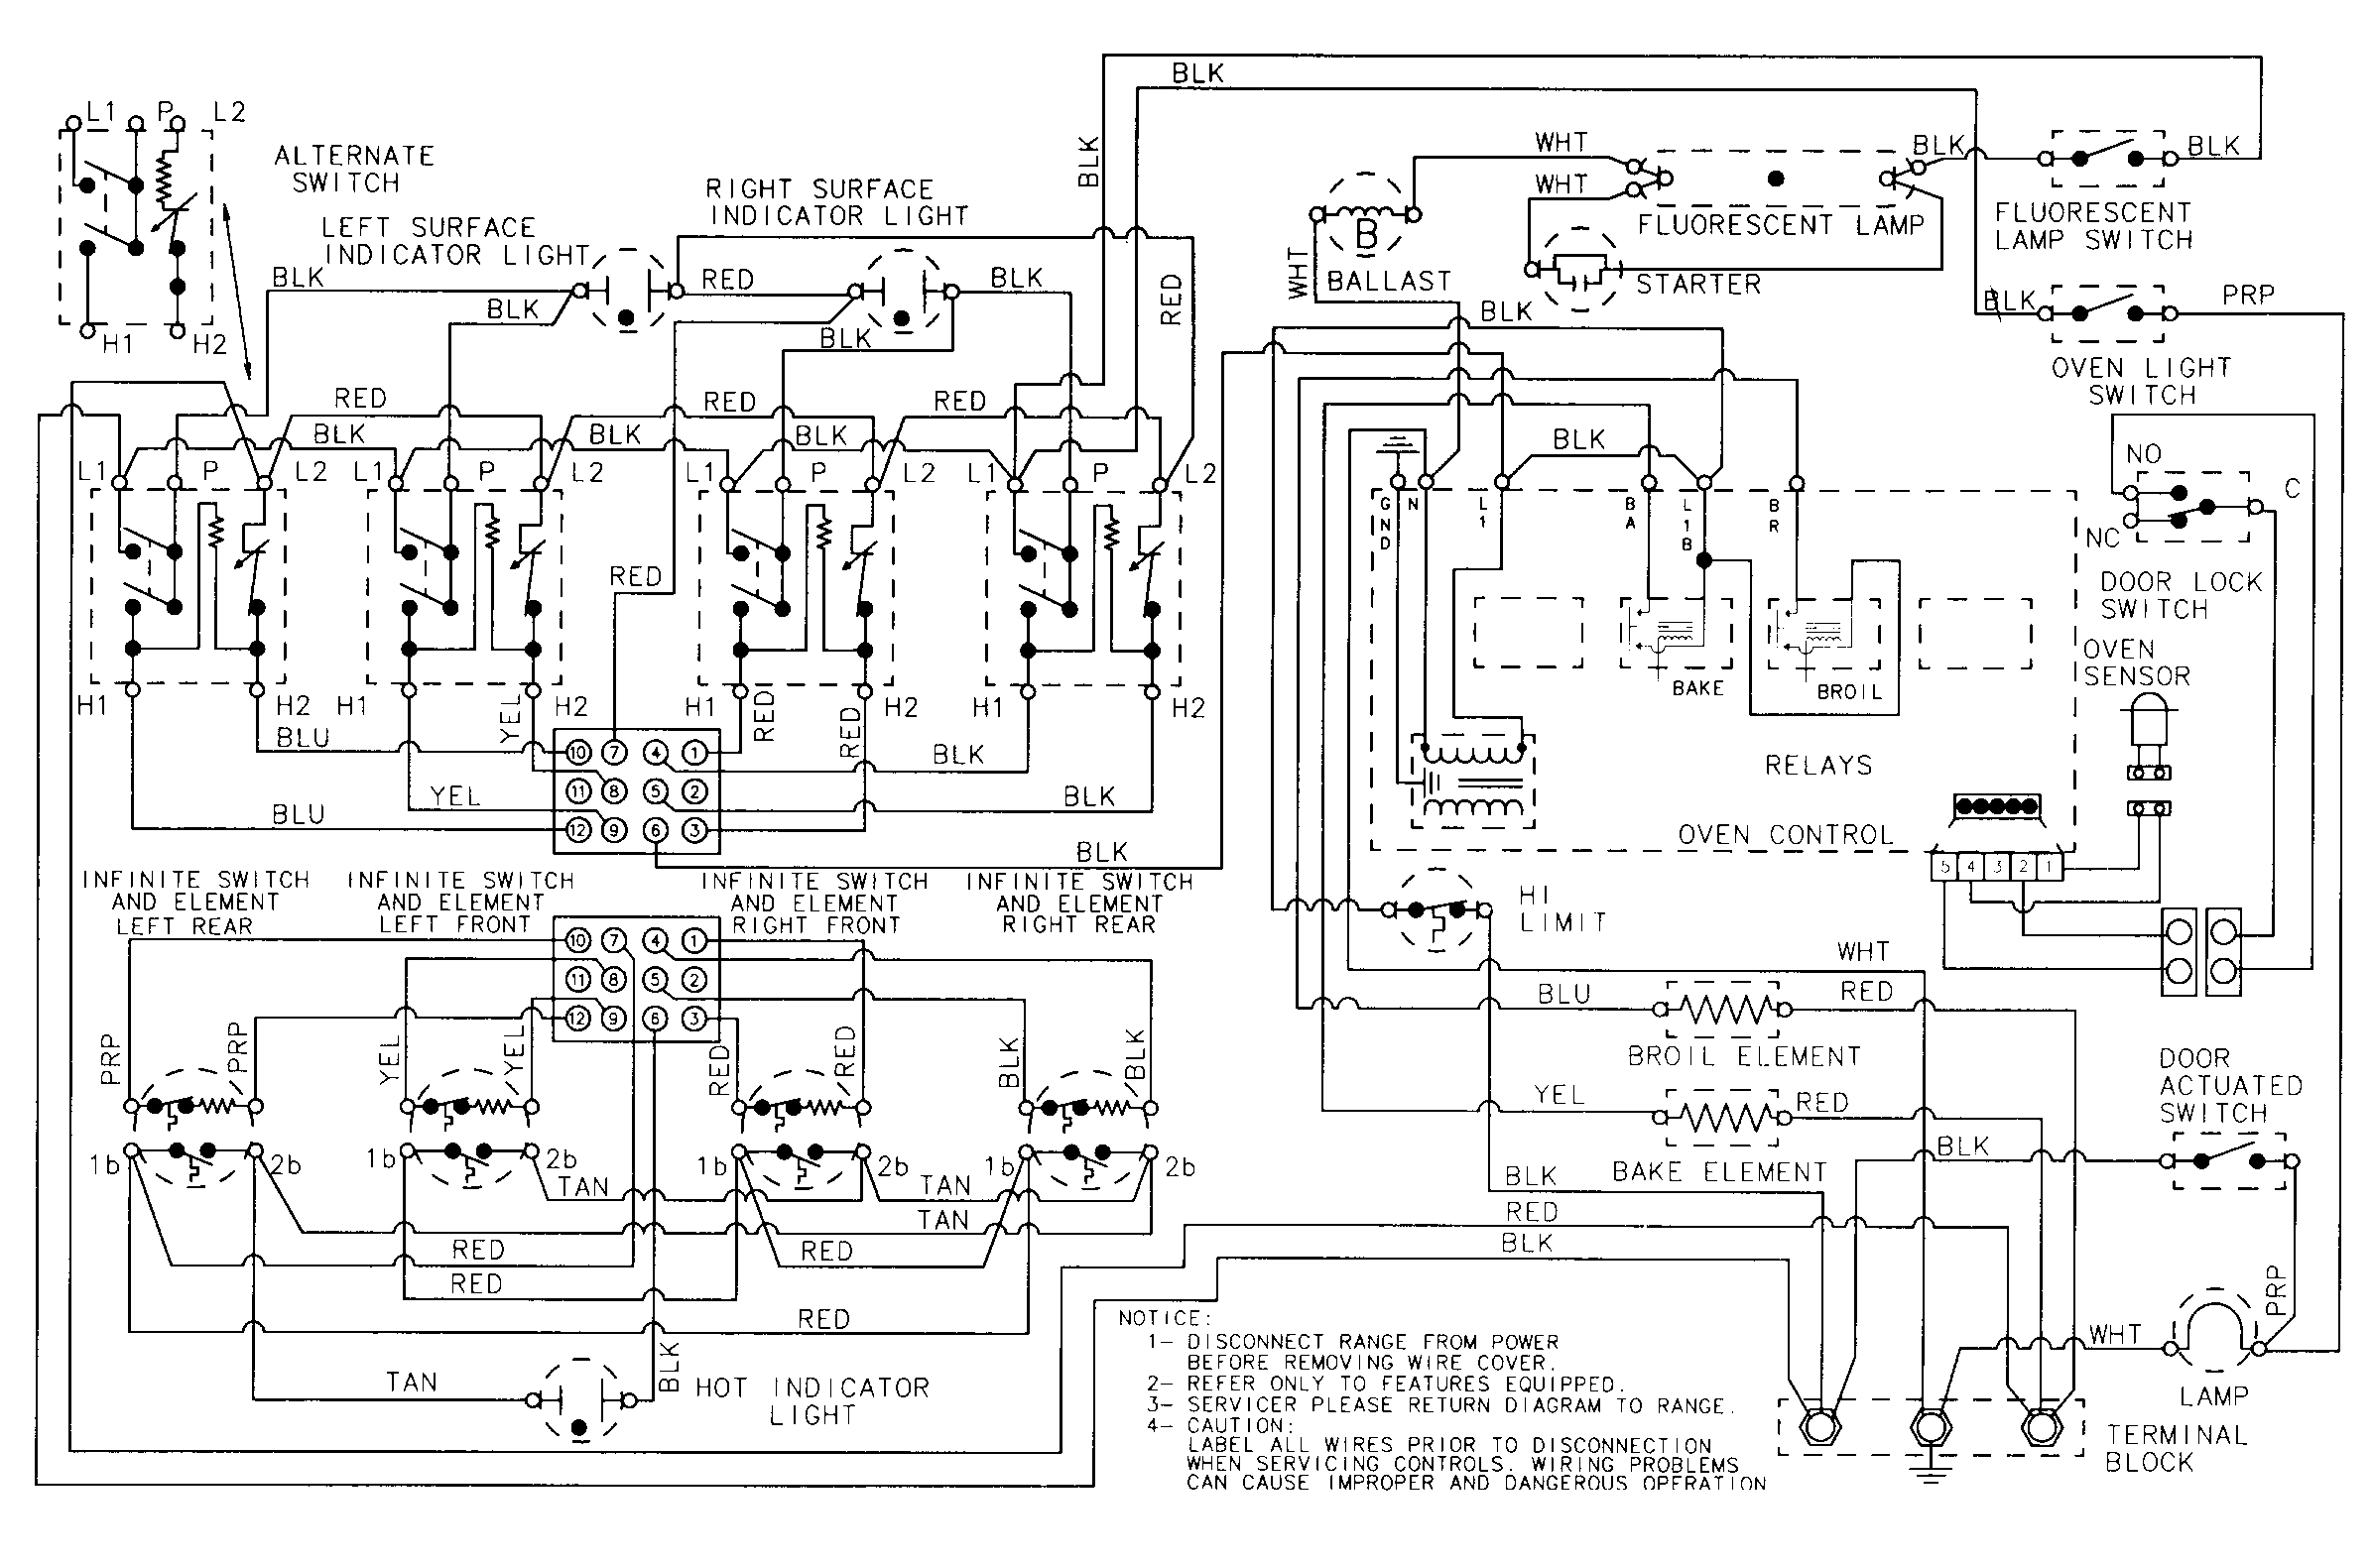 maytag range diagram wiring diagram \u2022 maytag centennial dryer wiring diagram maytag cre9600 timer stove clocks and appliance timers rh appliancetimers ca maytag electric range maytag electric range stoves